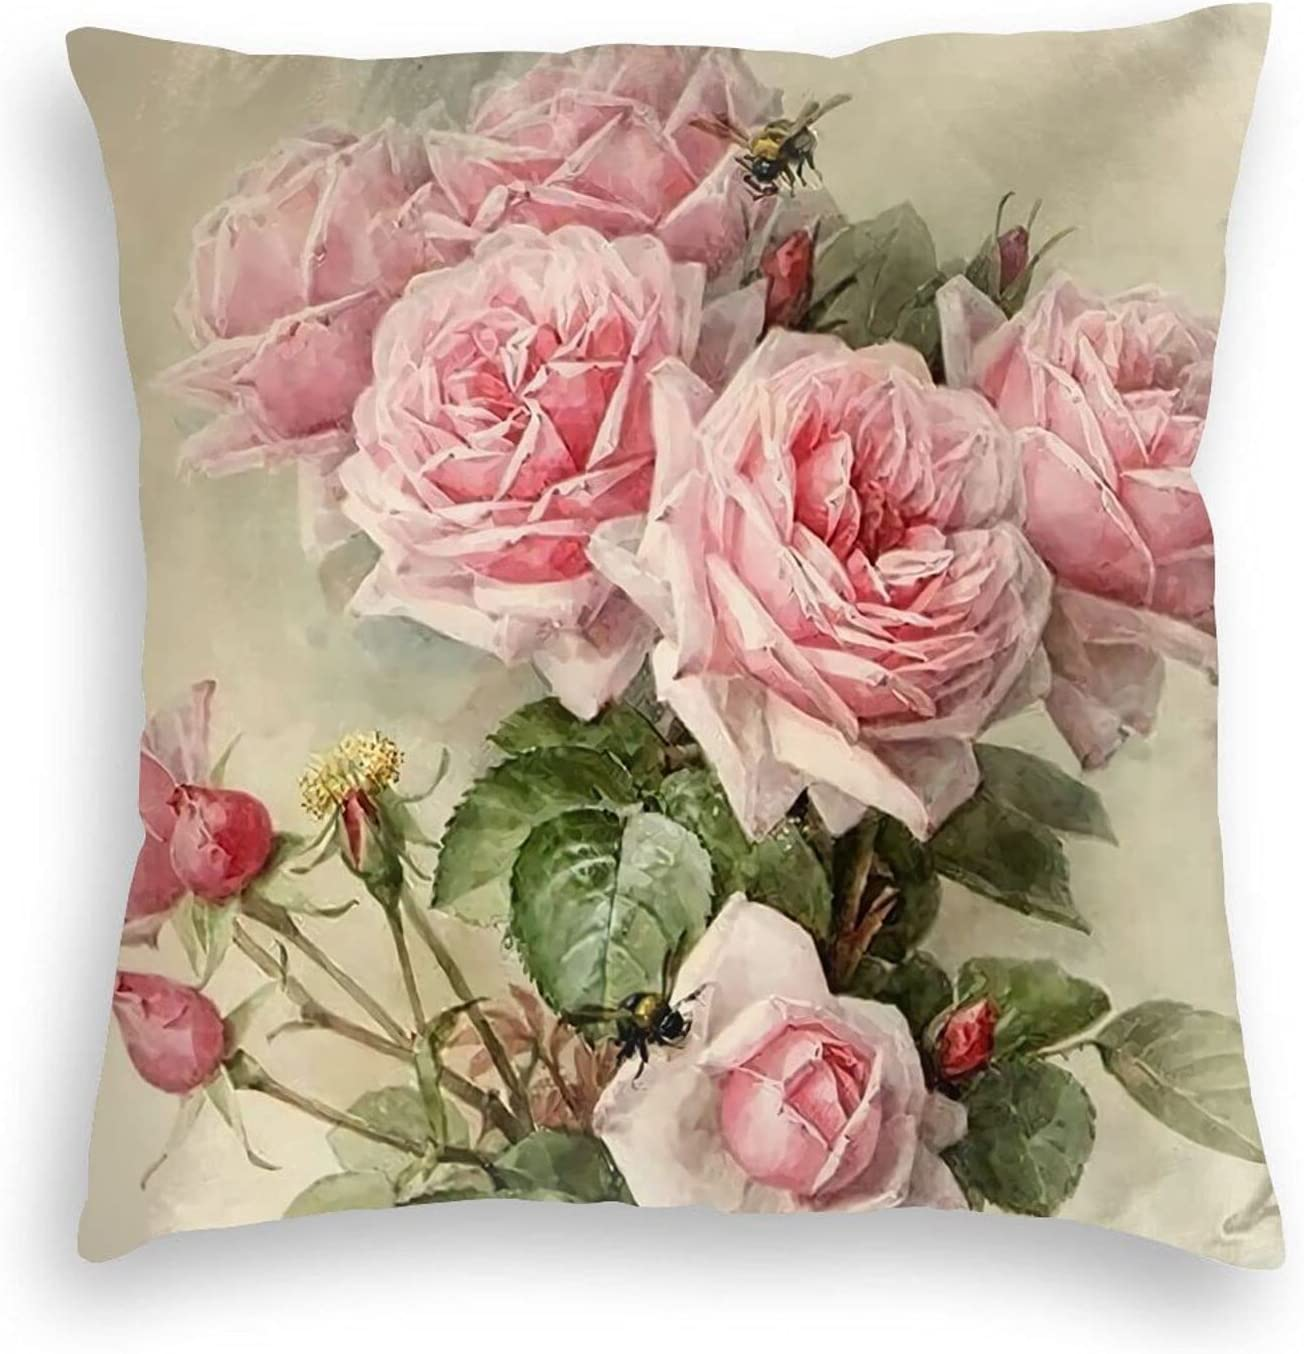 Emkoie Throw Pillow Covers Vintage Shabby Chic Pink Rose Floral Decorative Home Decor Pillow Cases Cushion Covers for Couch Sofa Bed 18x18 Inch